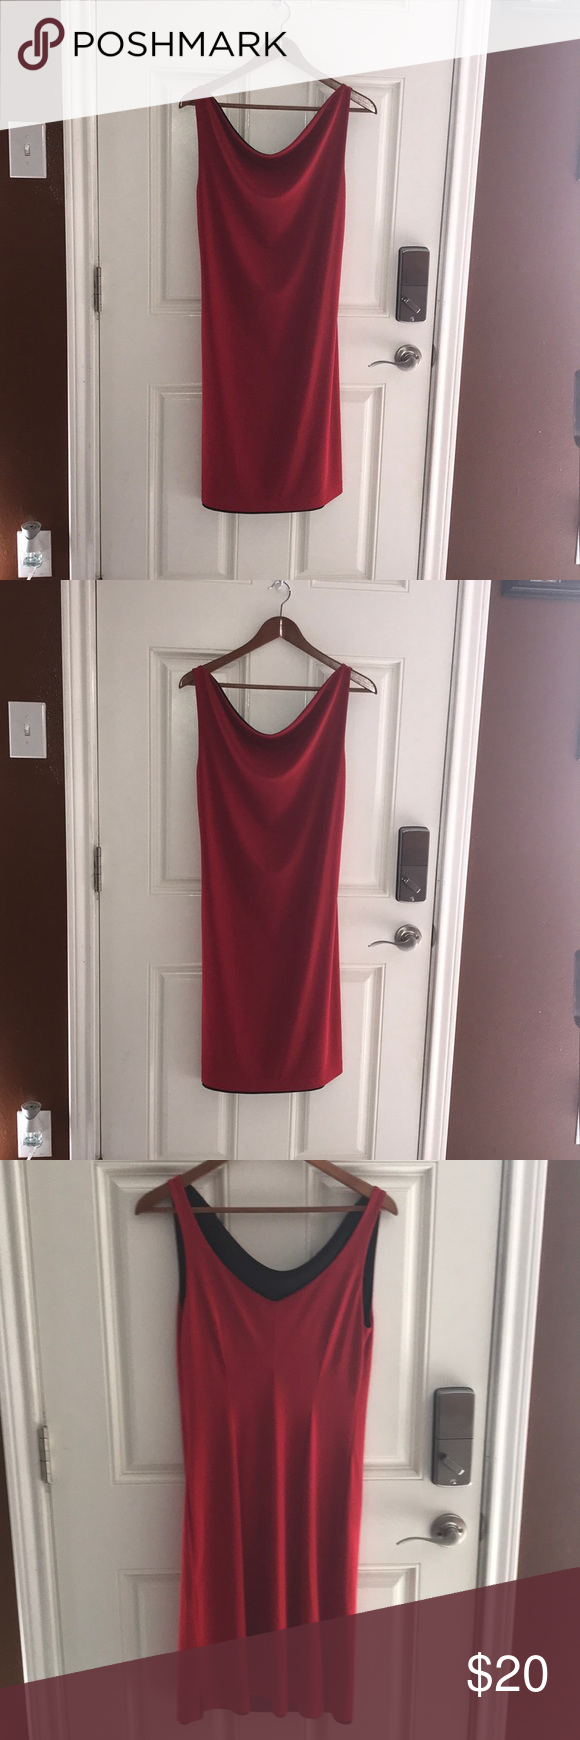 Reversible dress red black dress and red black